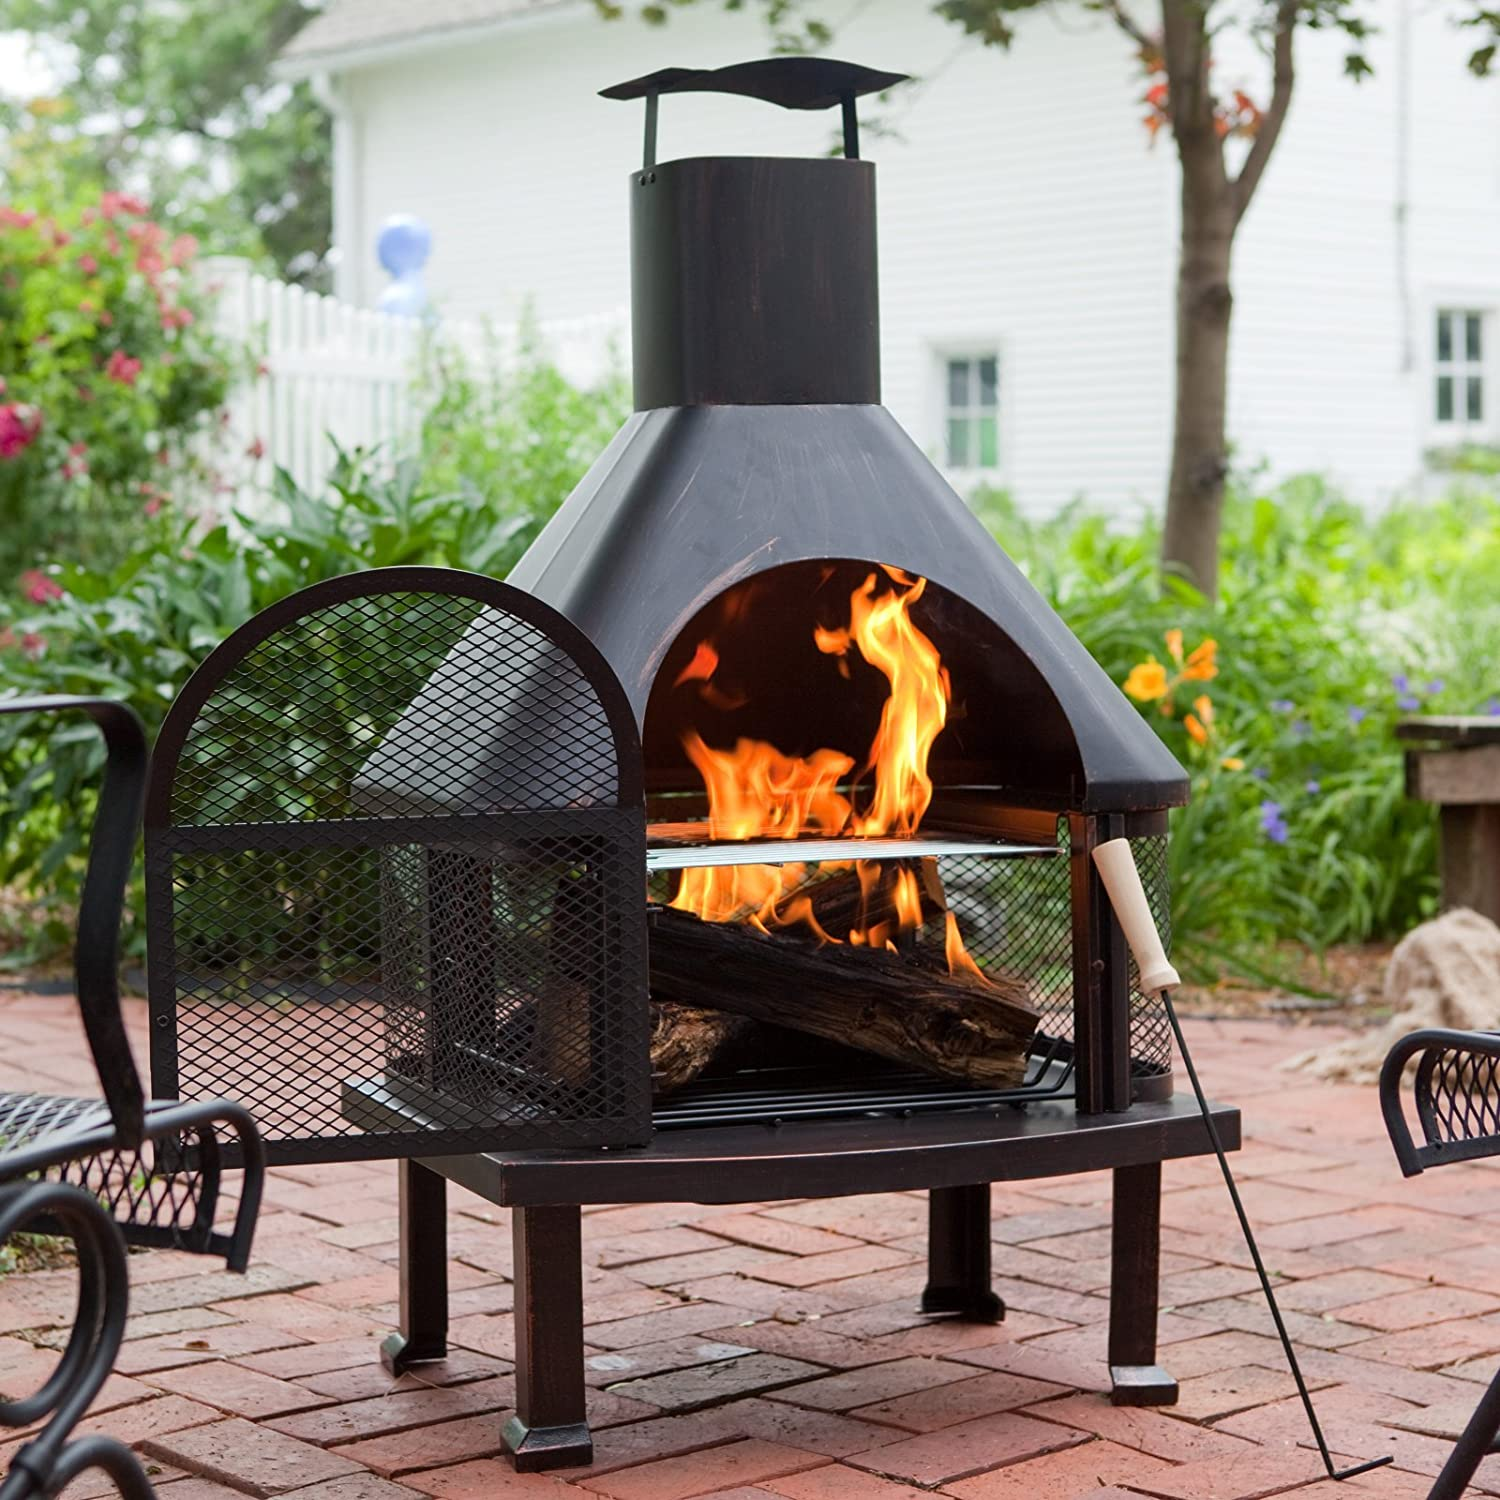 Amazon.com : Red Ember Wellington 4 ft. Fireplace with FREE Cover : Outdoor Fireplaces : Garden & Outdoor